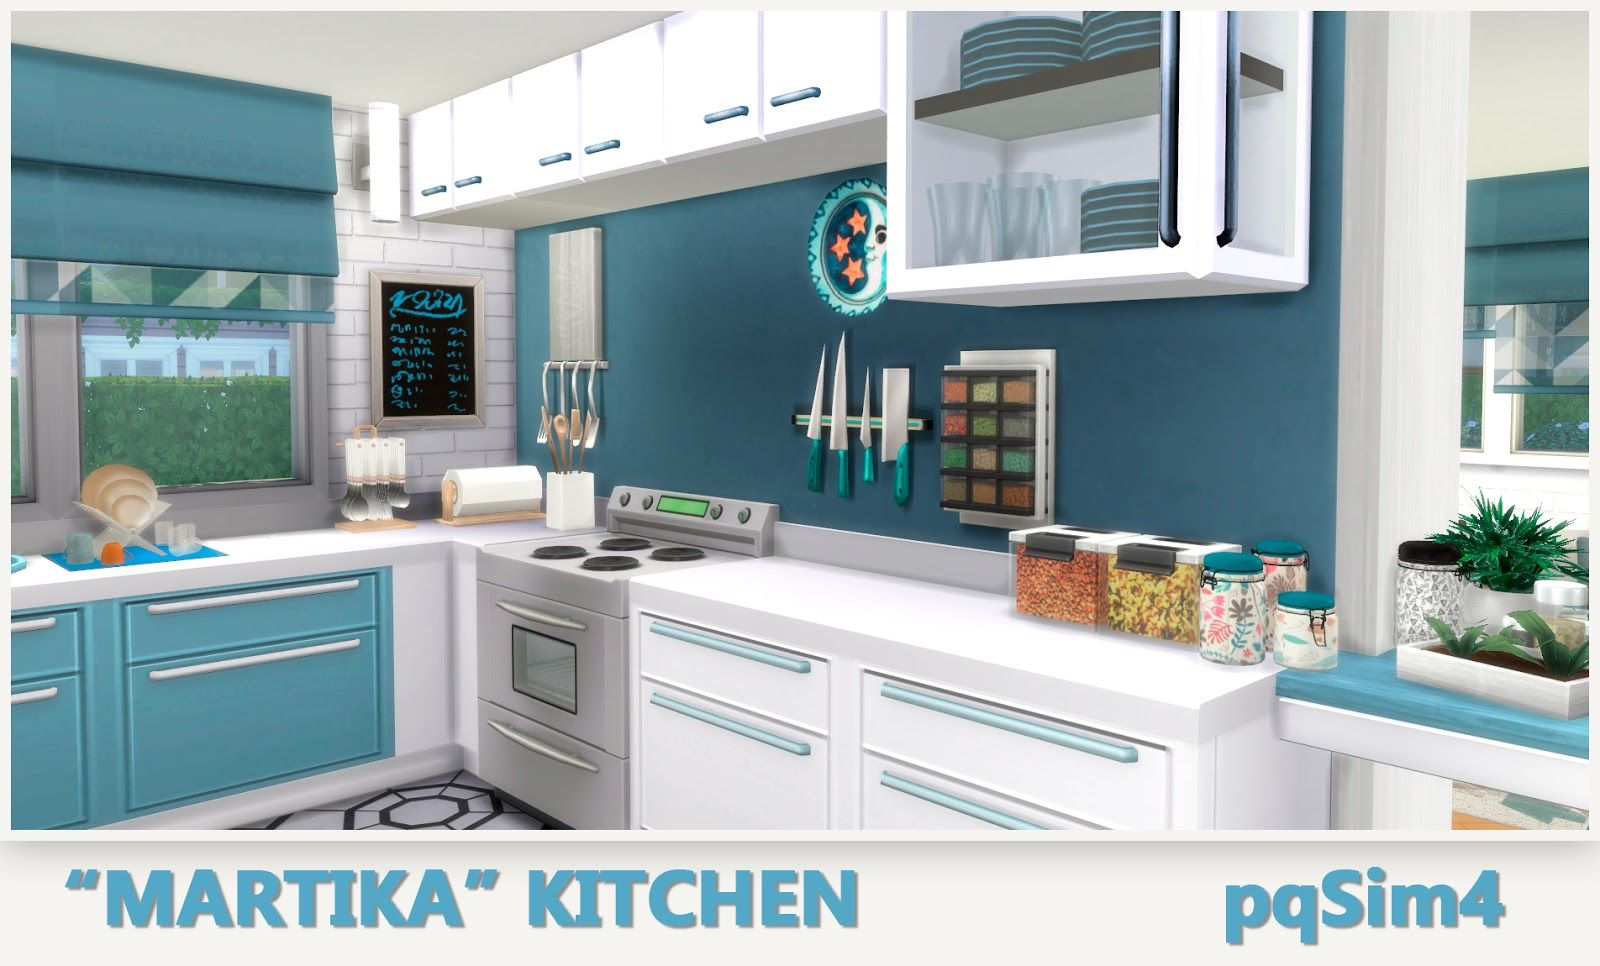 sims 4 mm cc maxis match kitchen set | Sims 4 cc | Sims 4